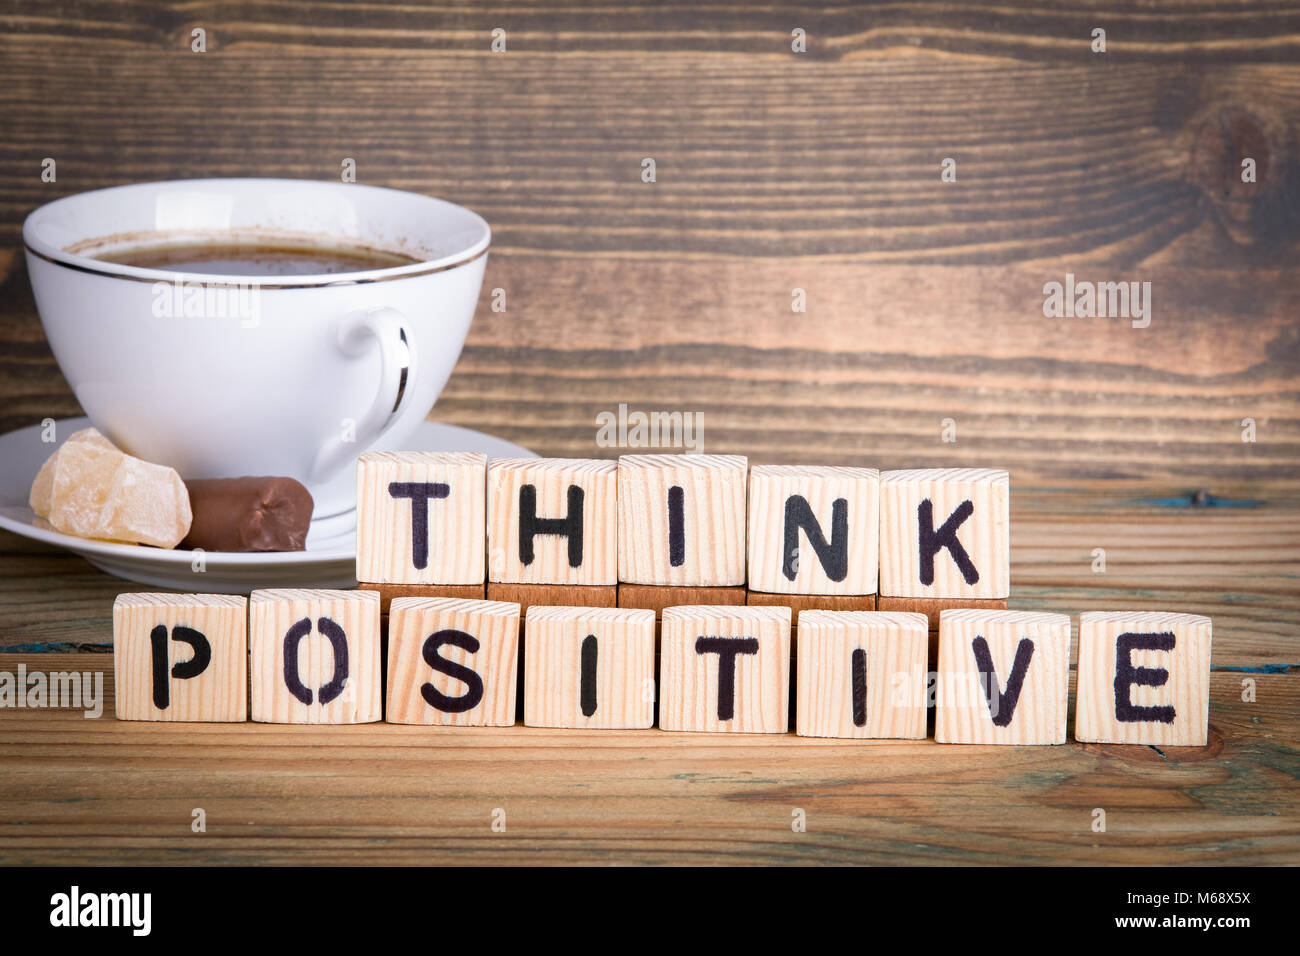 think positive. Wooden letters on the office desk, informative and communication background - Stock Image